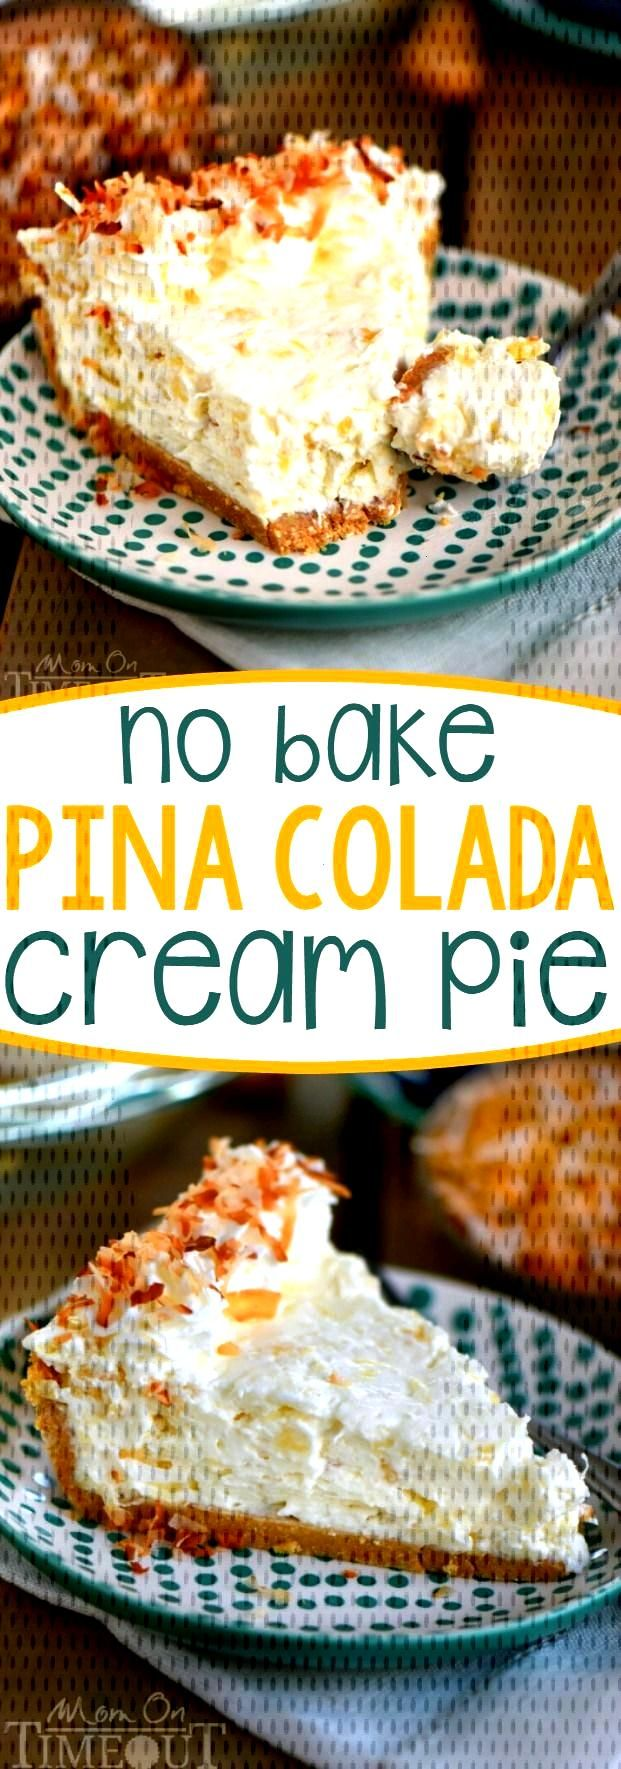 If you like drinking pina coladas...youre going to love this No Bake Pina Colada Cream Pie! Its a